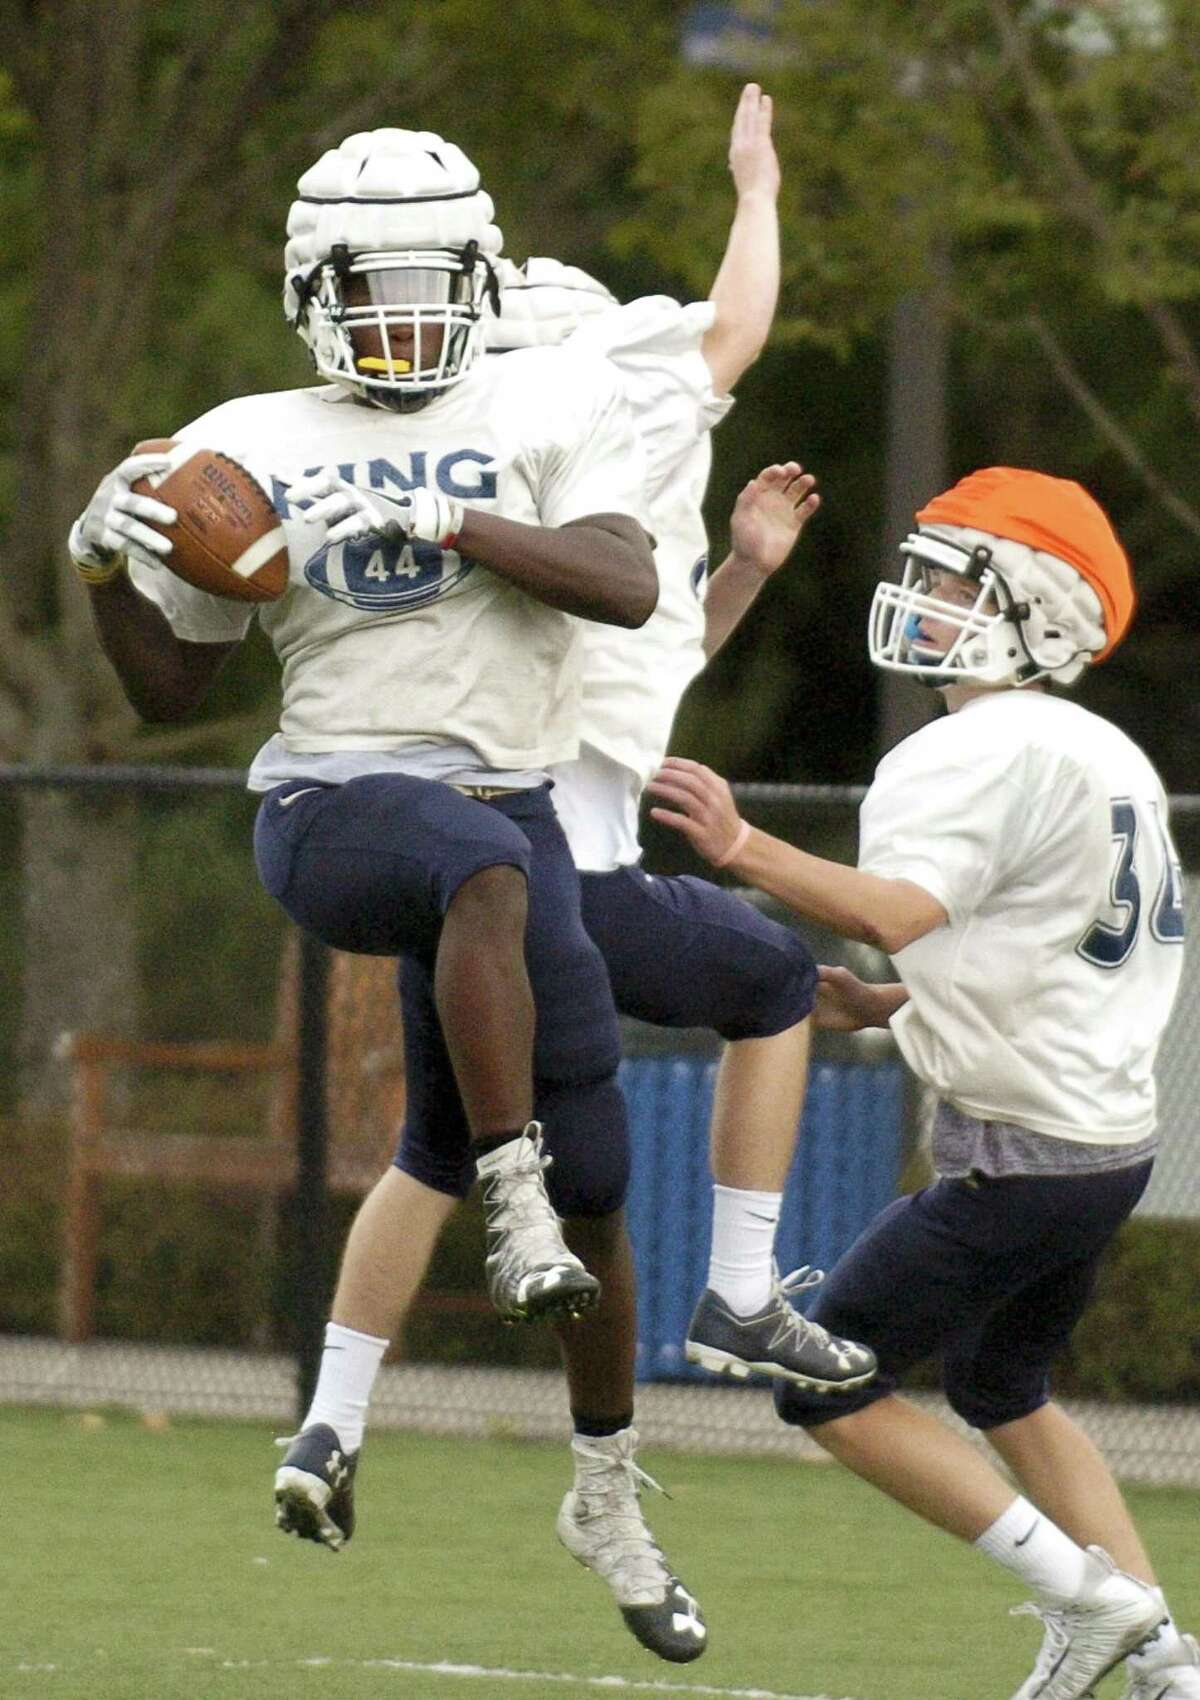 King outside linebacker Levaughn Lewis makes a reception during a practice at the school on Wednesday in Stamford.